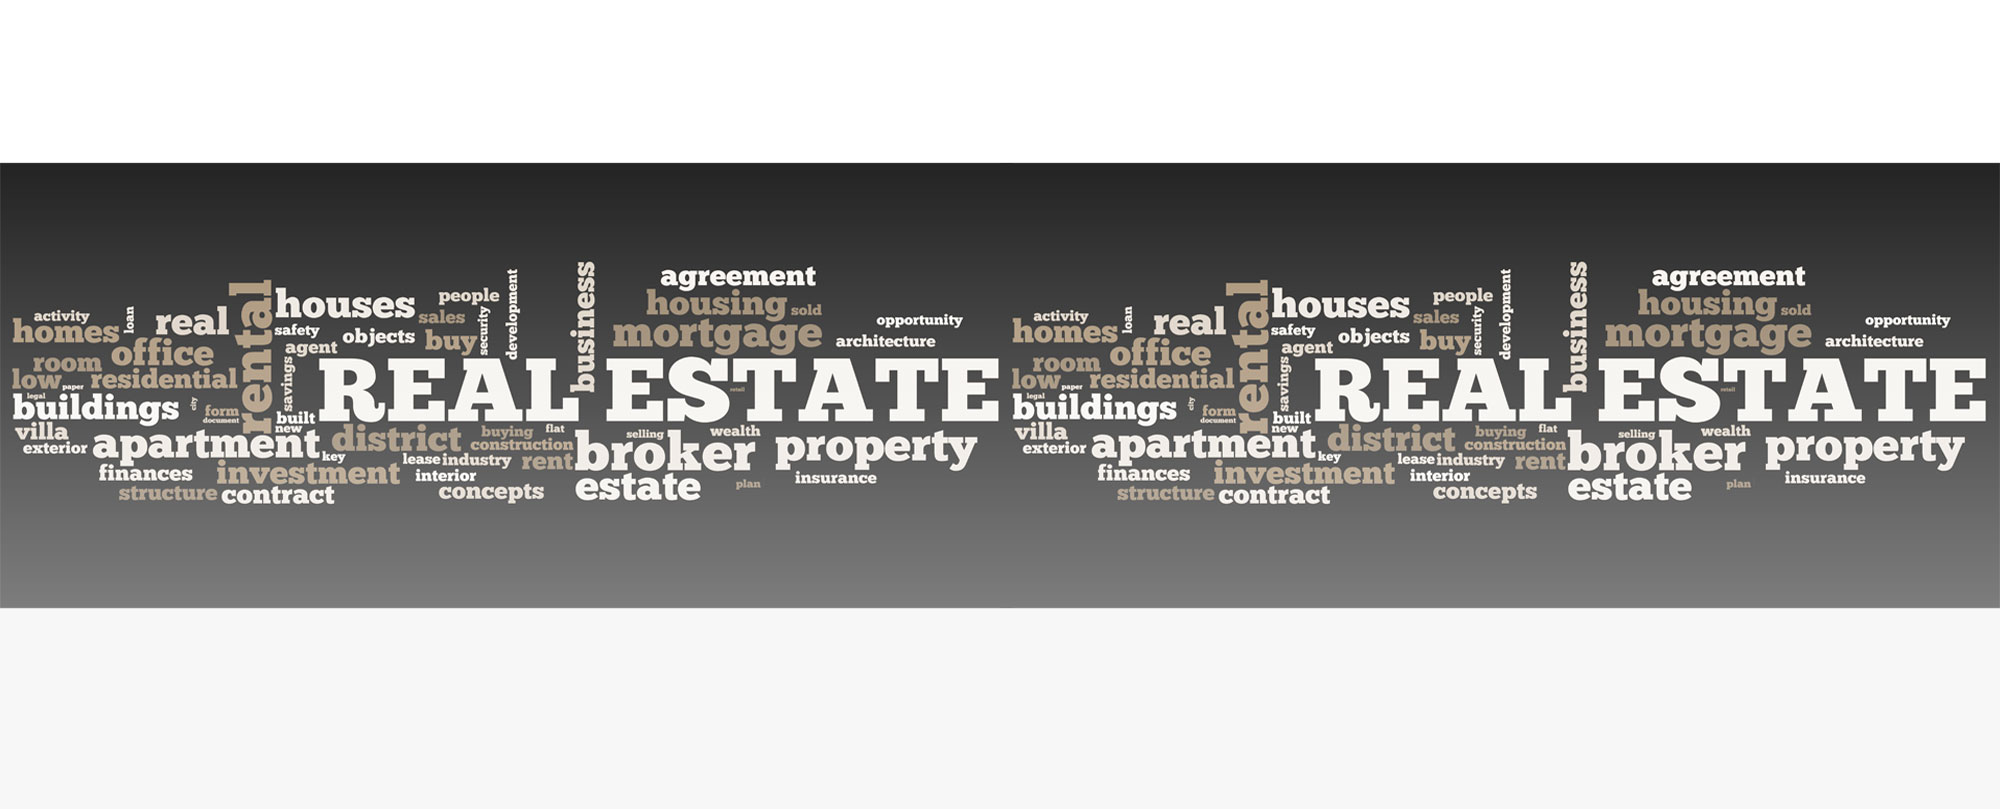 Collage of terms relating to real estate buisness.